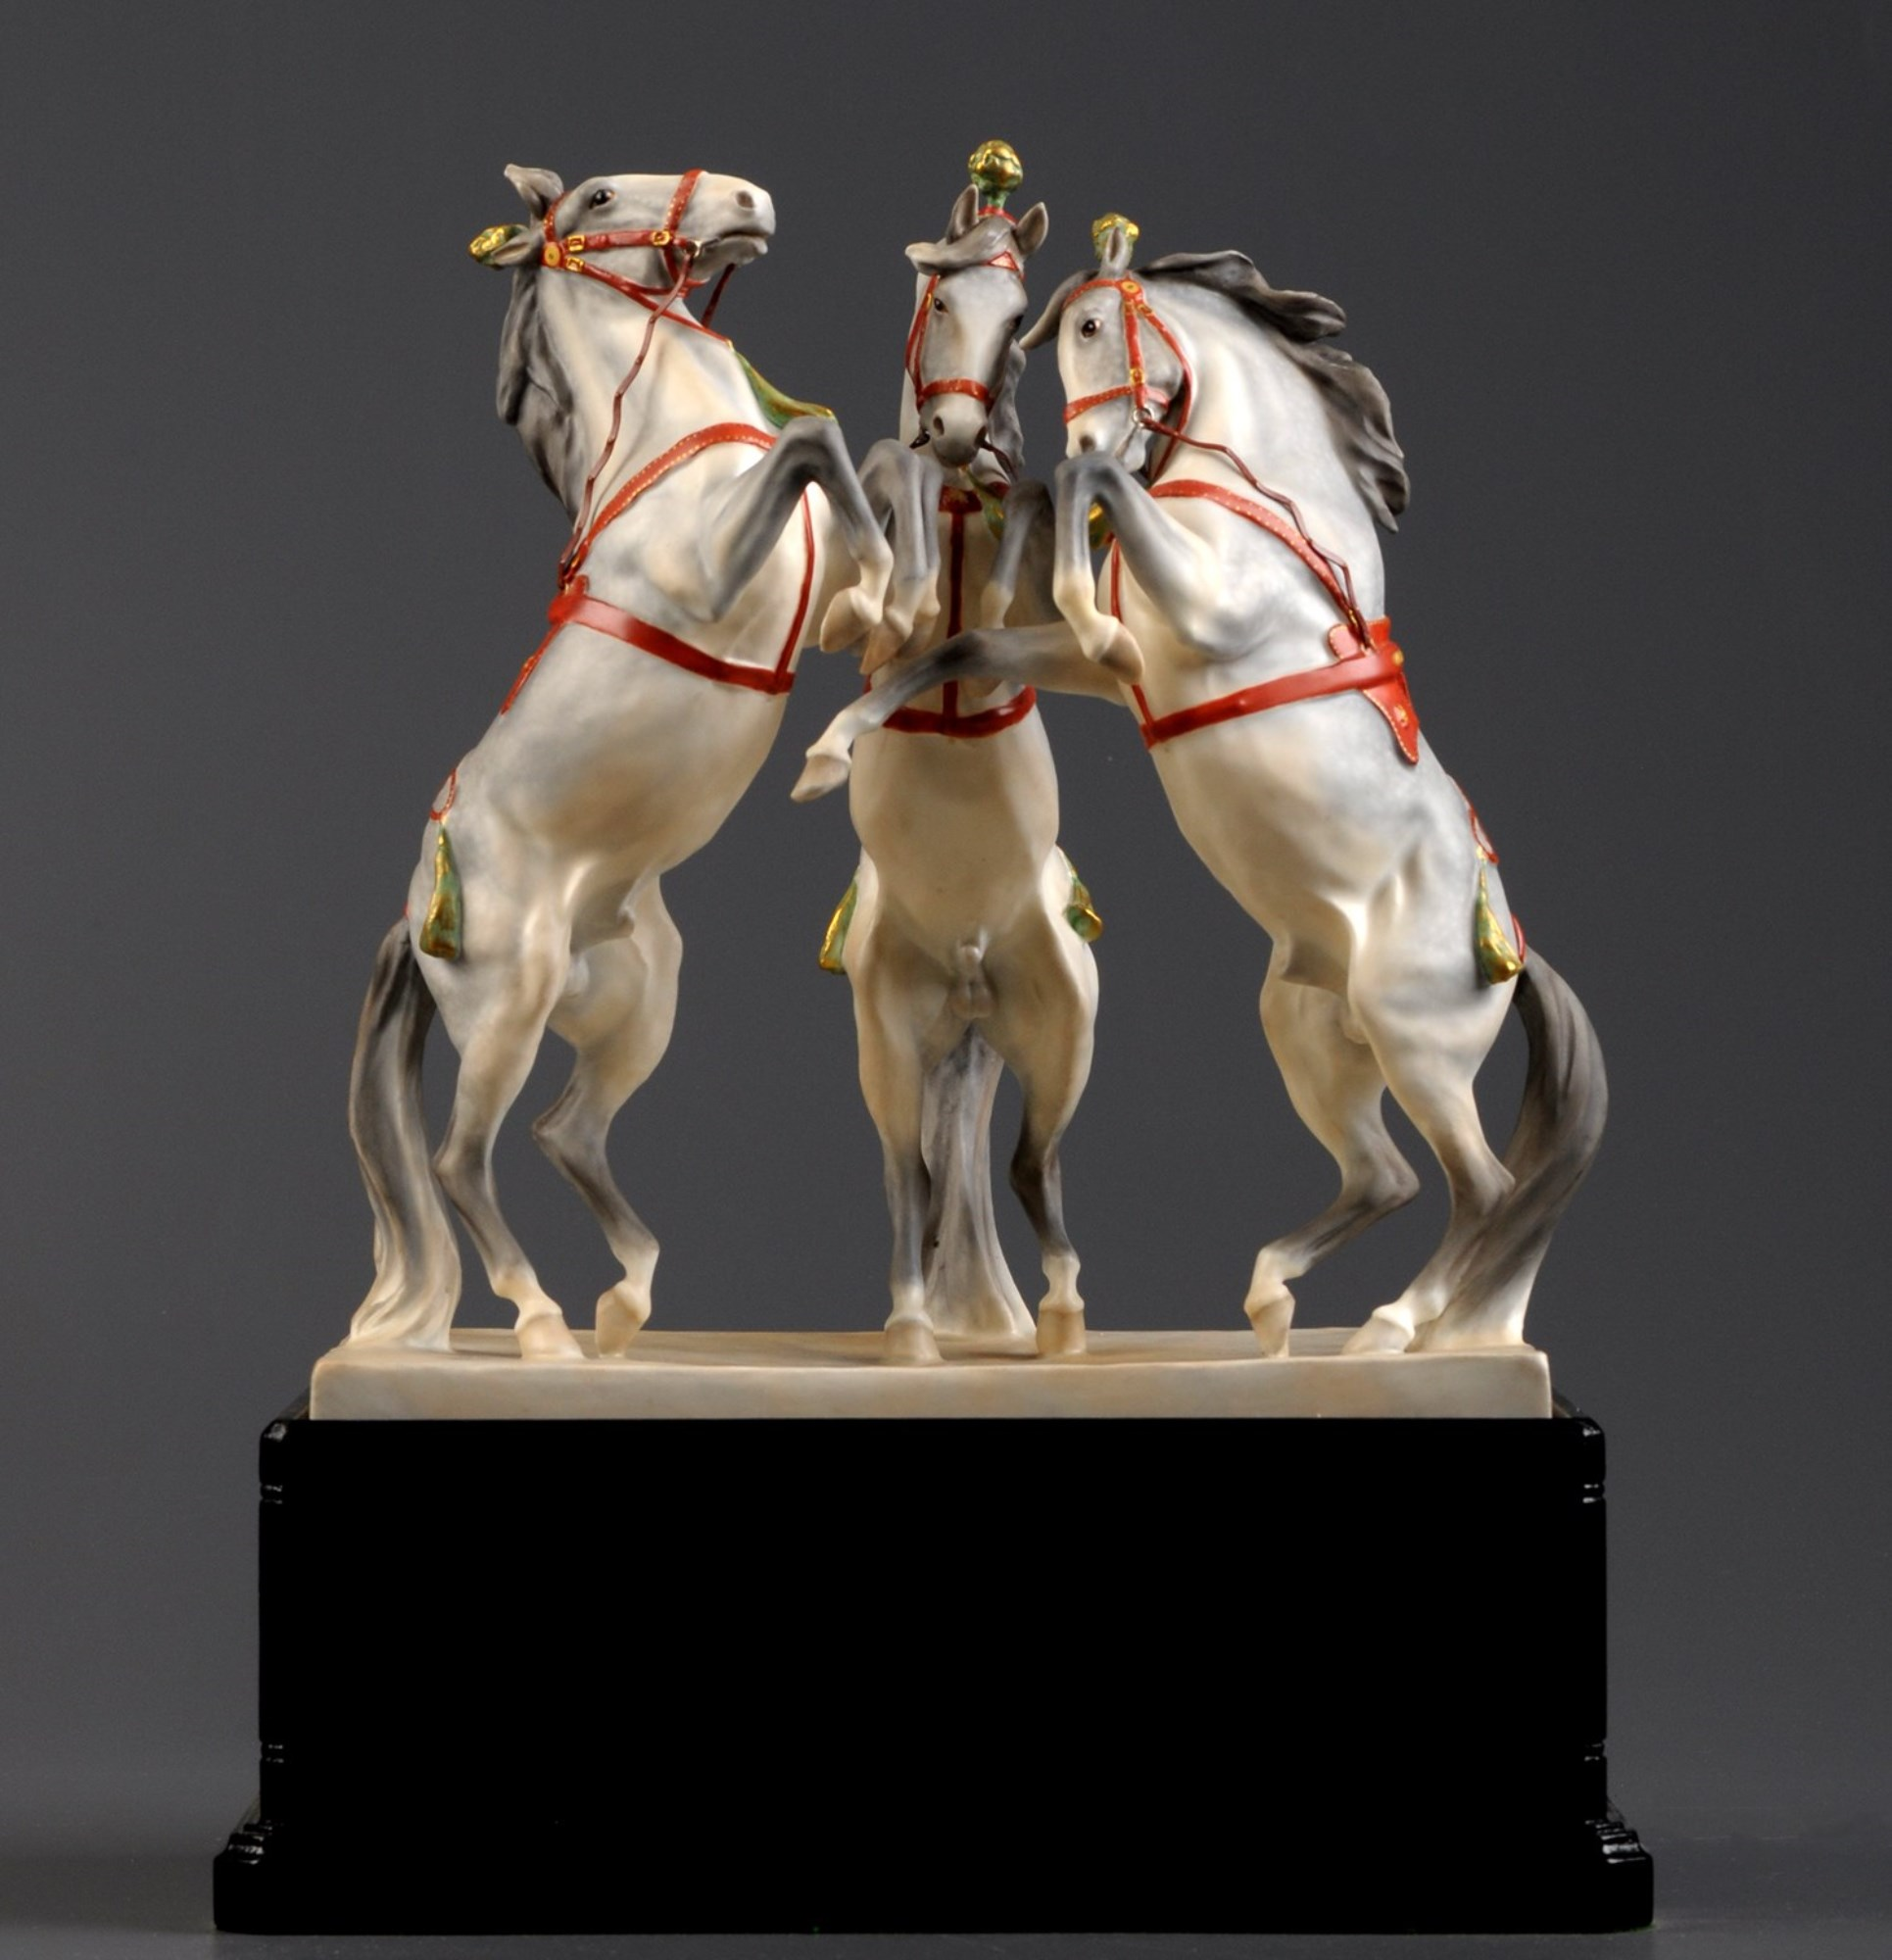 Royal Worcester: a group of Circus Horses, by Doris Lindner